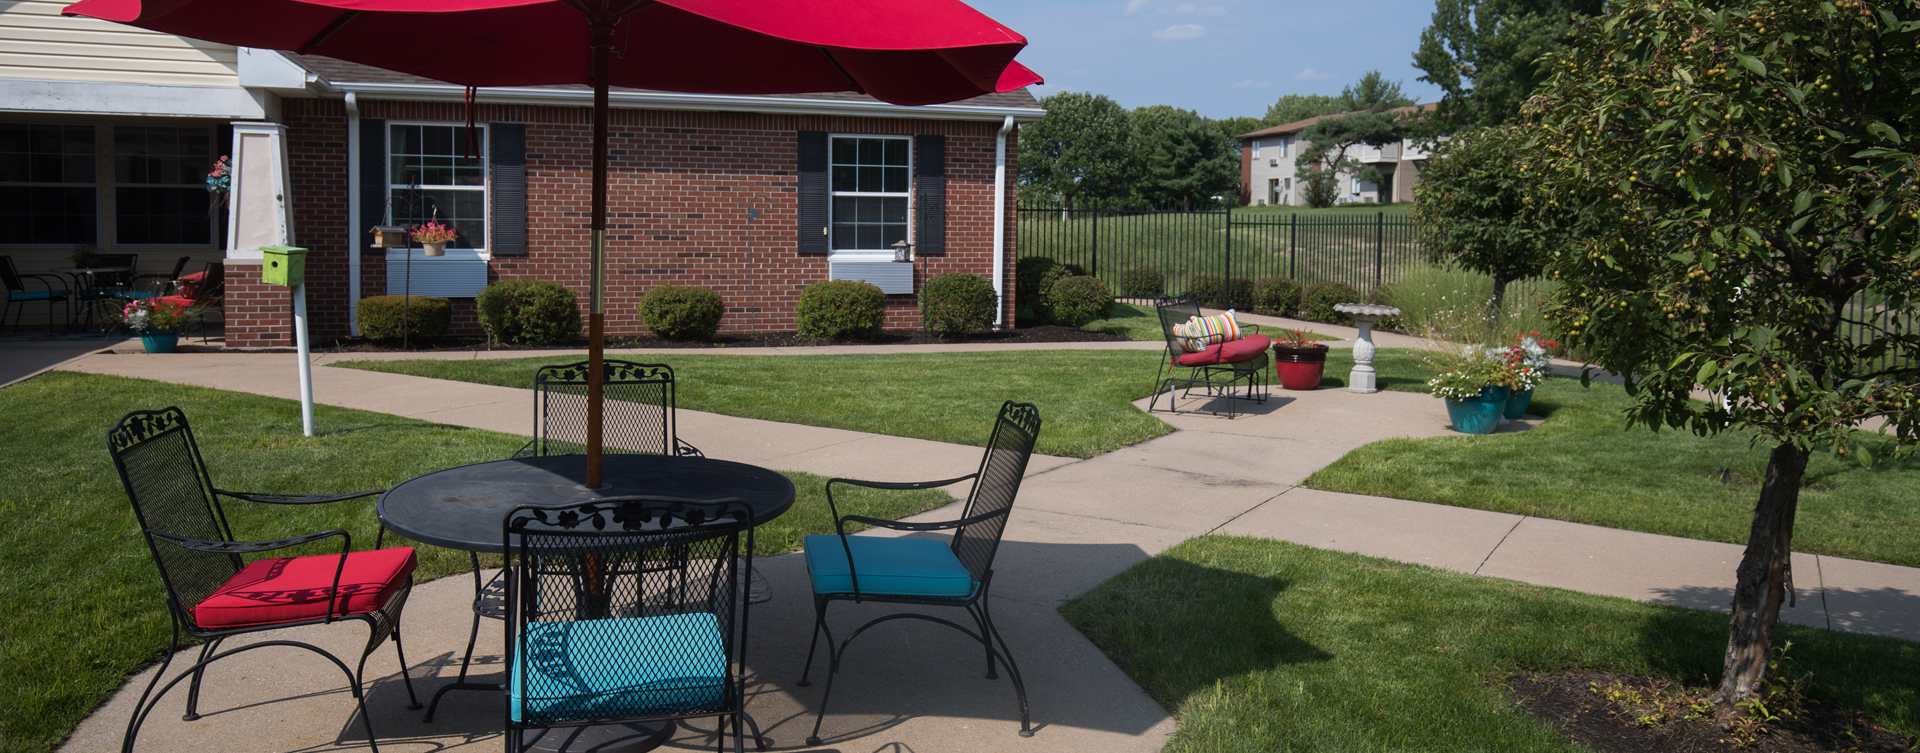 A single entrance courtyard gives residents with dementia the opportunity to be safe outside at Bickford of Quincy